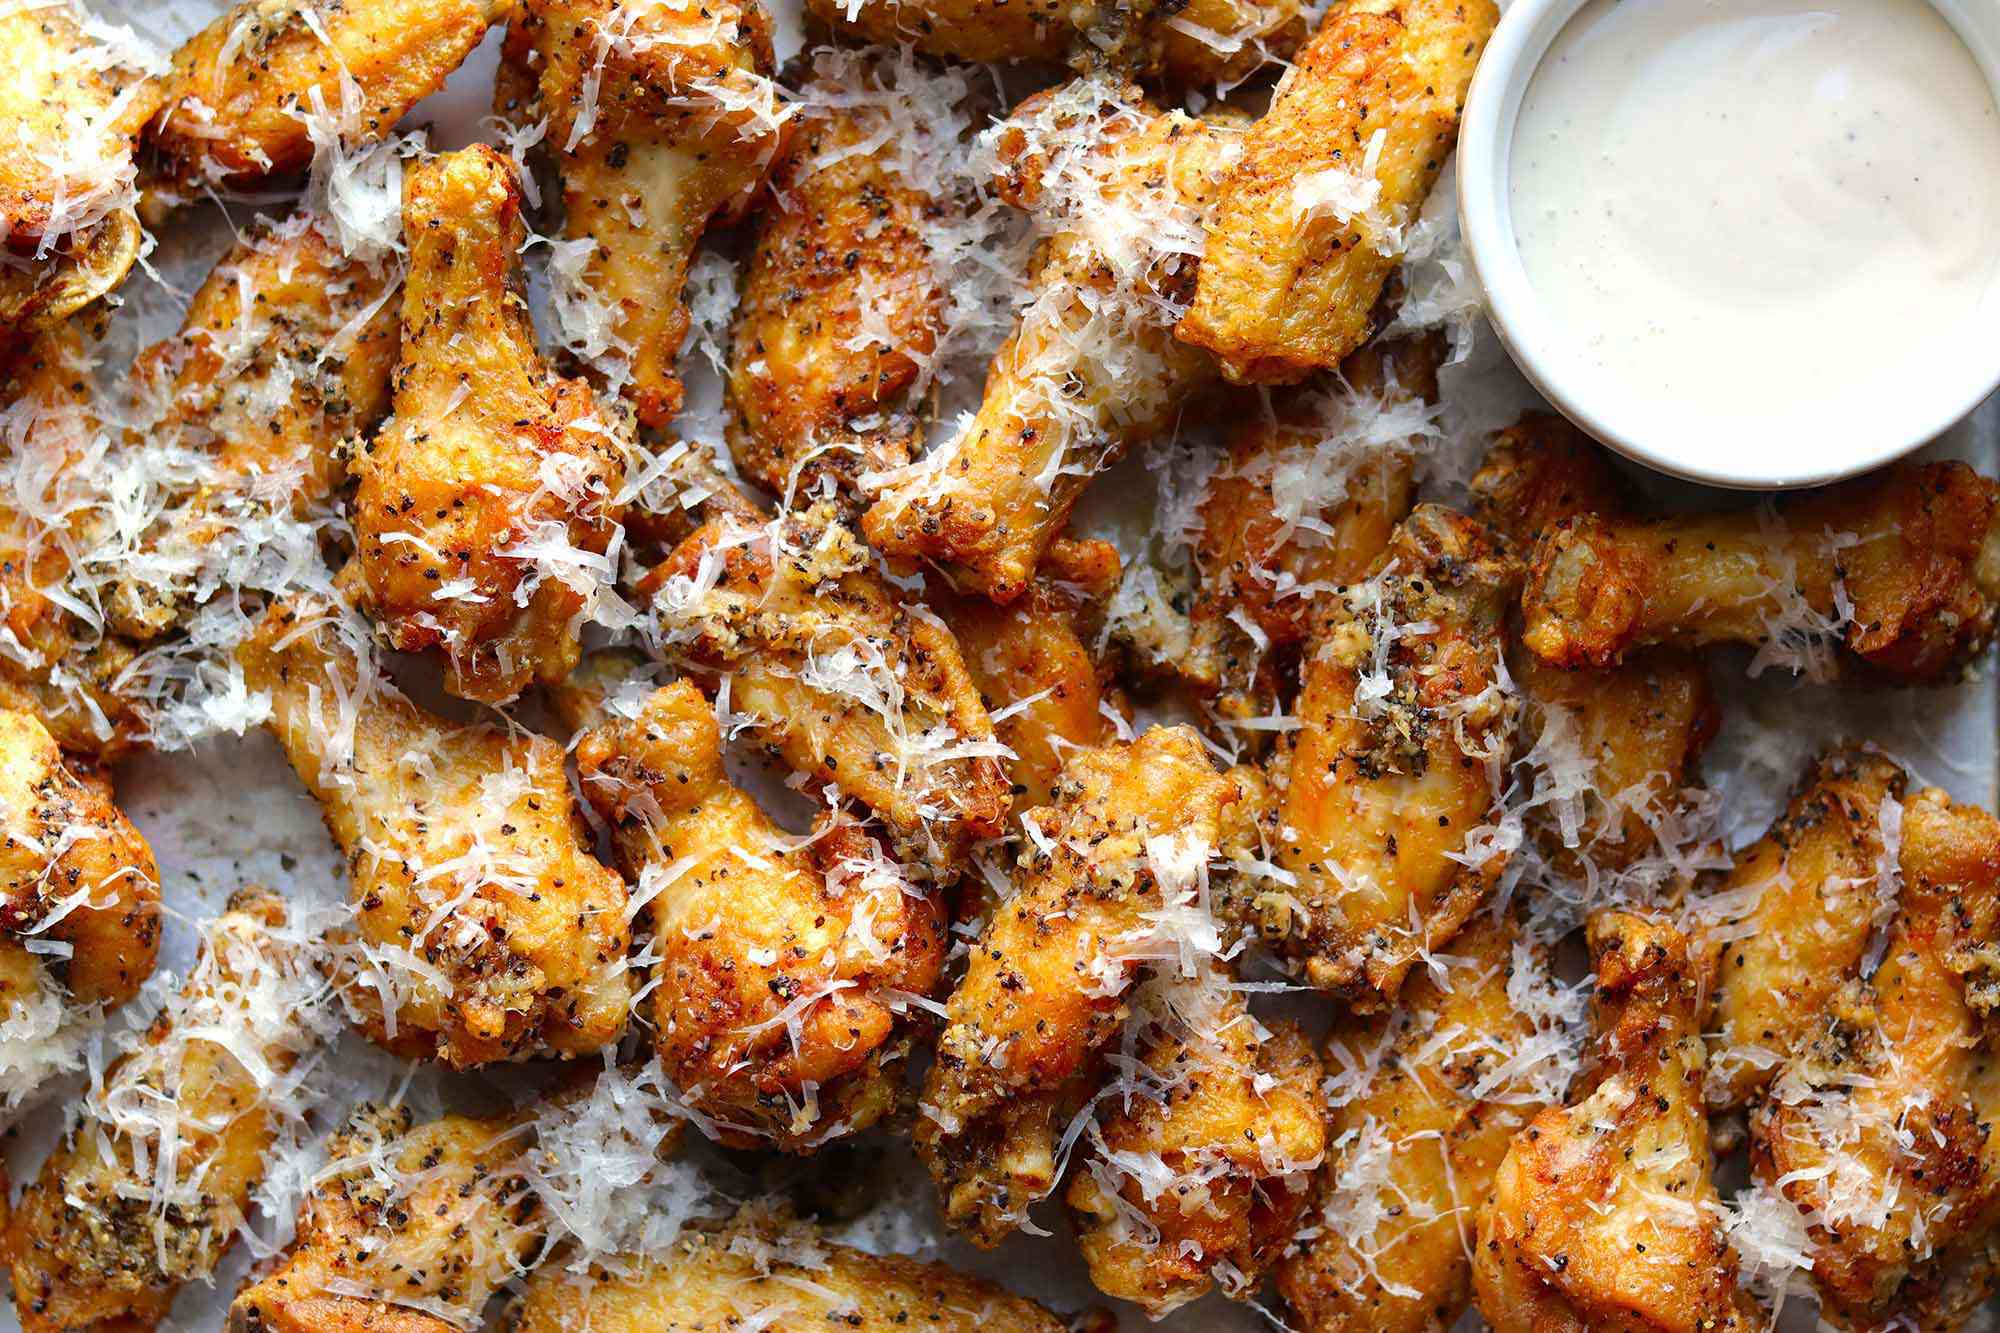 Fried cacio e pepe chicken wings with blue cheese dipping sauce